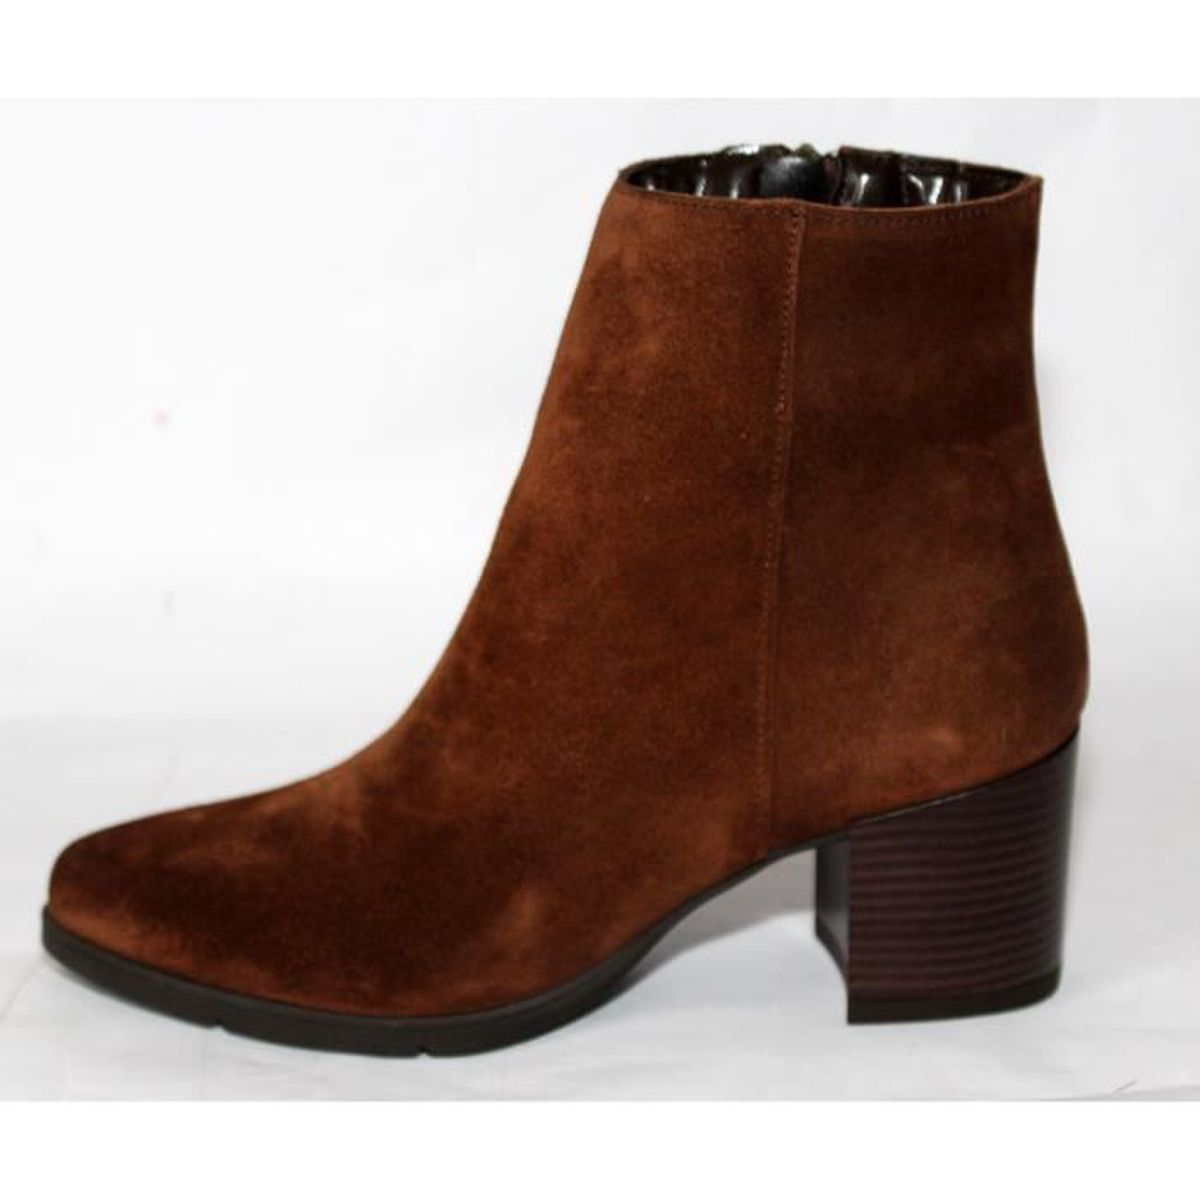 KELL BOTTINES CHAUSSURES CUIR MARRON FEMME T 37 NEUVES AgO4RpGBf